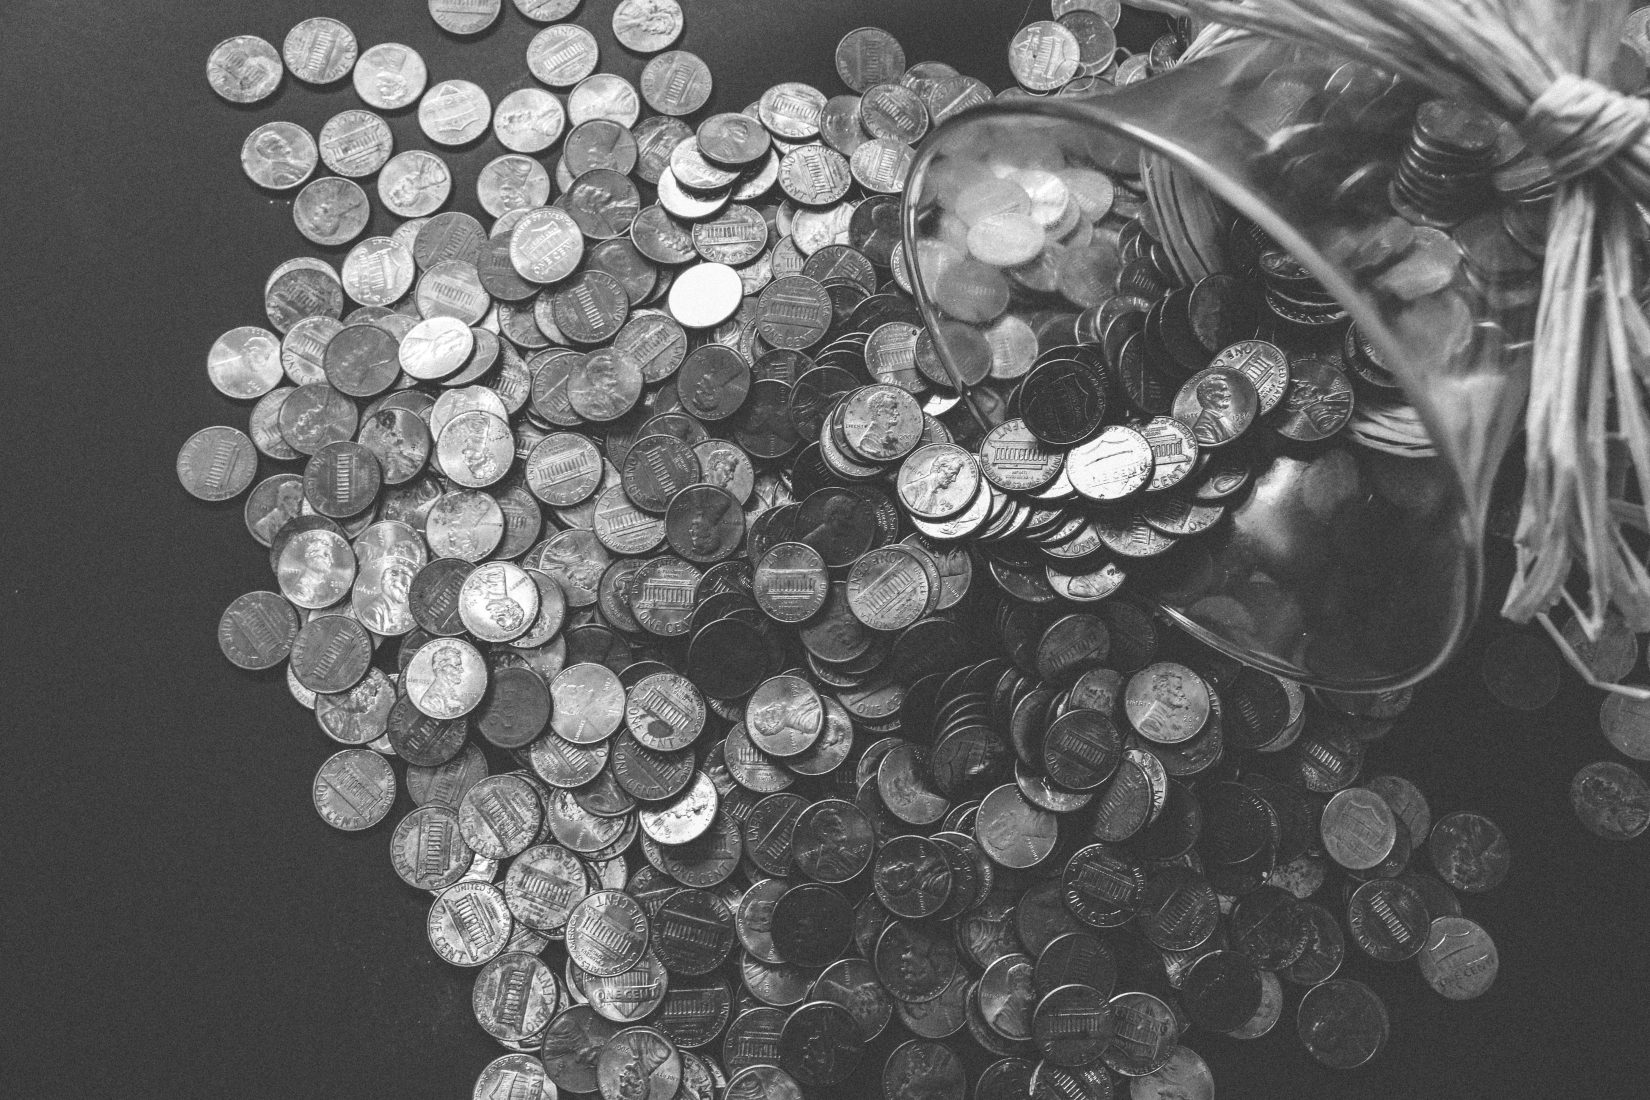 black and white photo of coins spilling out of a jar